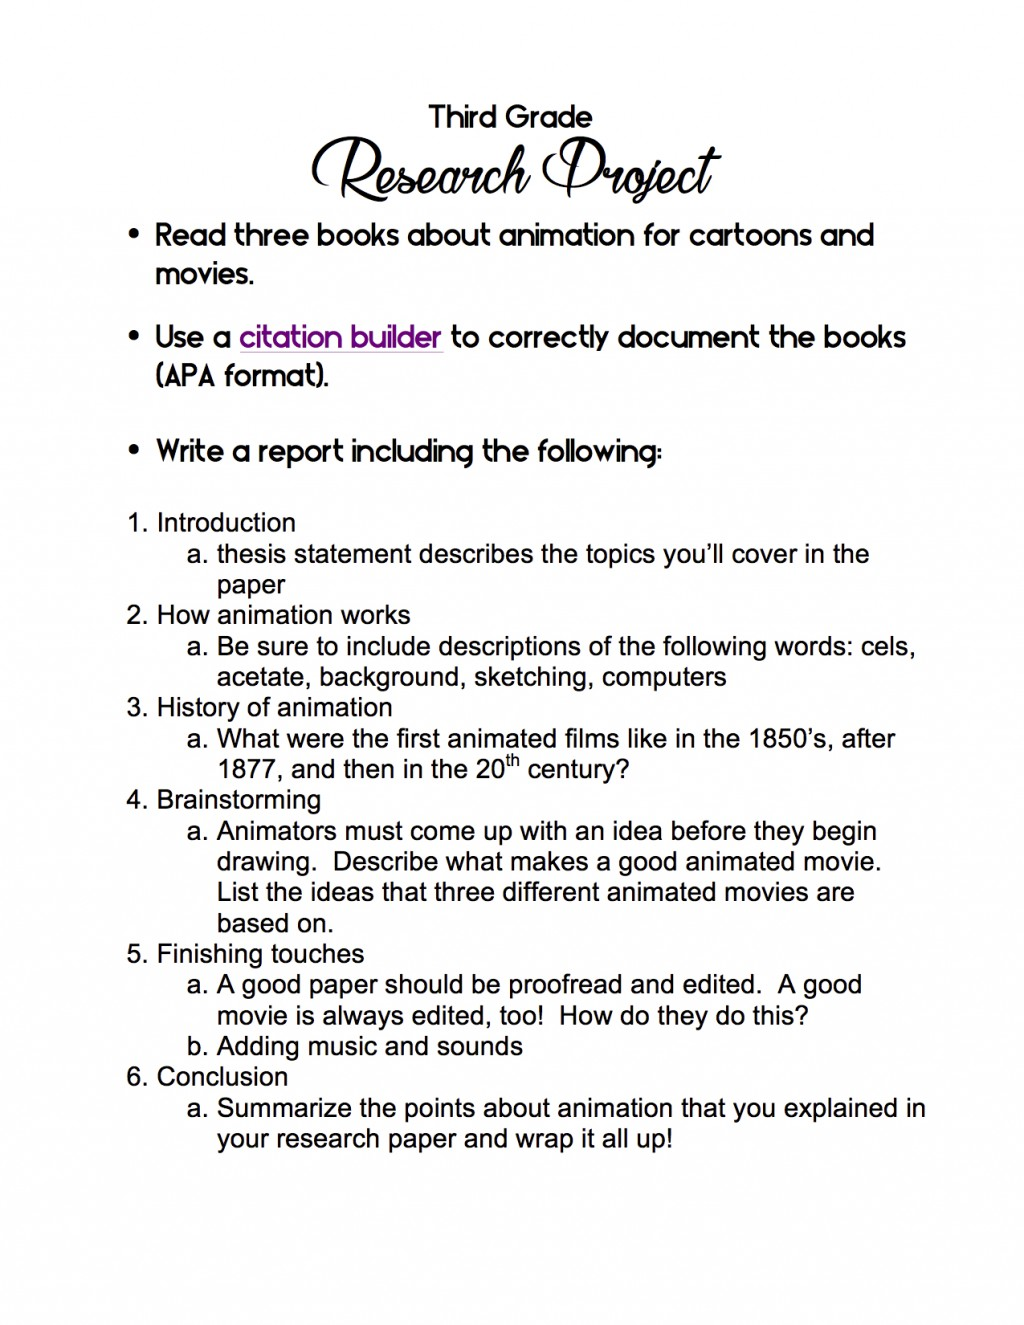 002 Research Paper Cancer Ideas 3rd Grade Shocking Topic Breast Large